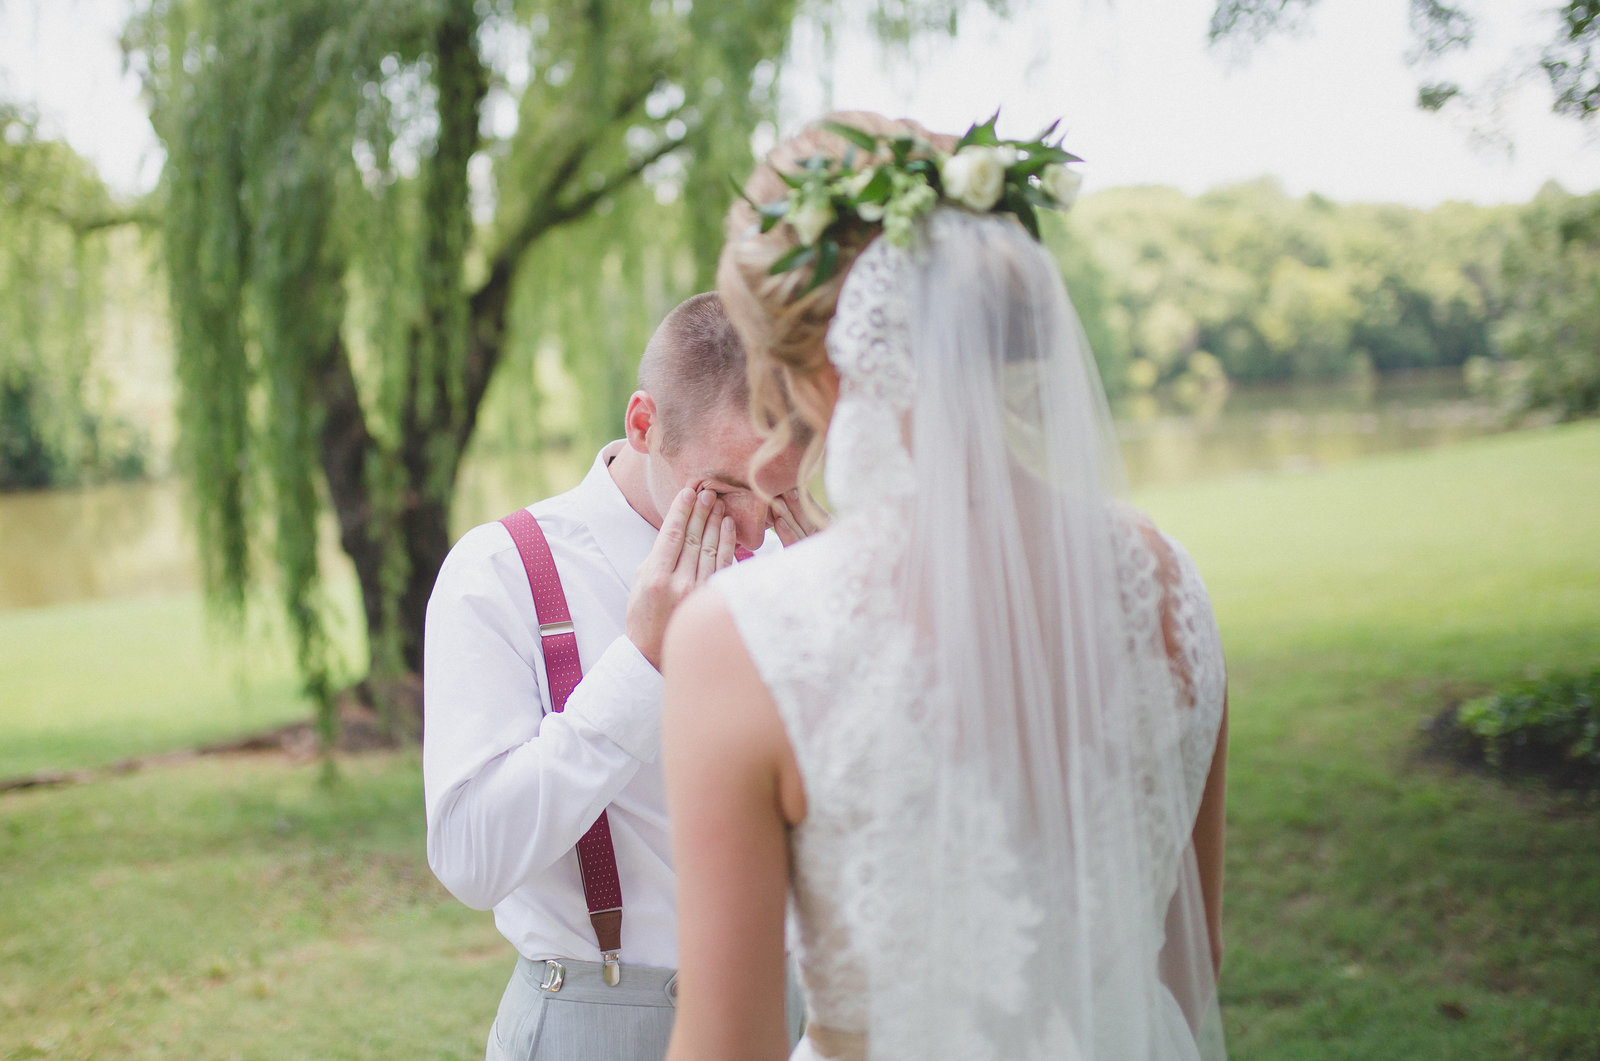 Knoxville Wedding Photographer serving East Tennessee and Destination Wedding clients